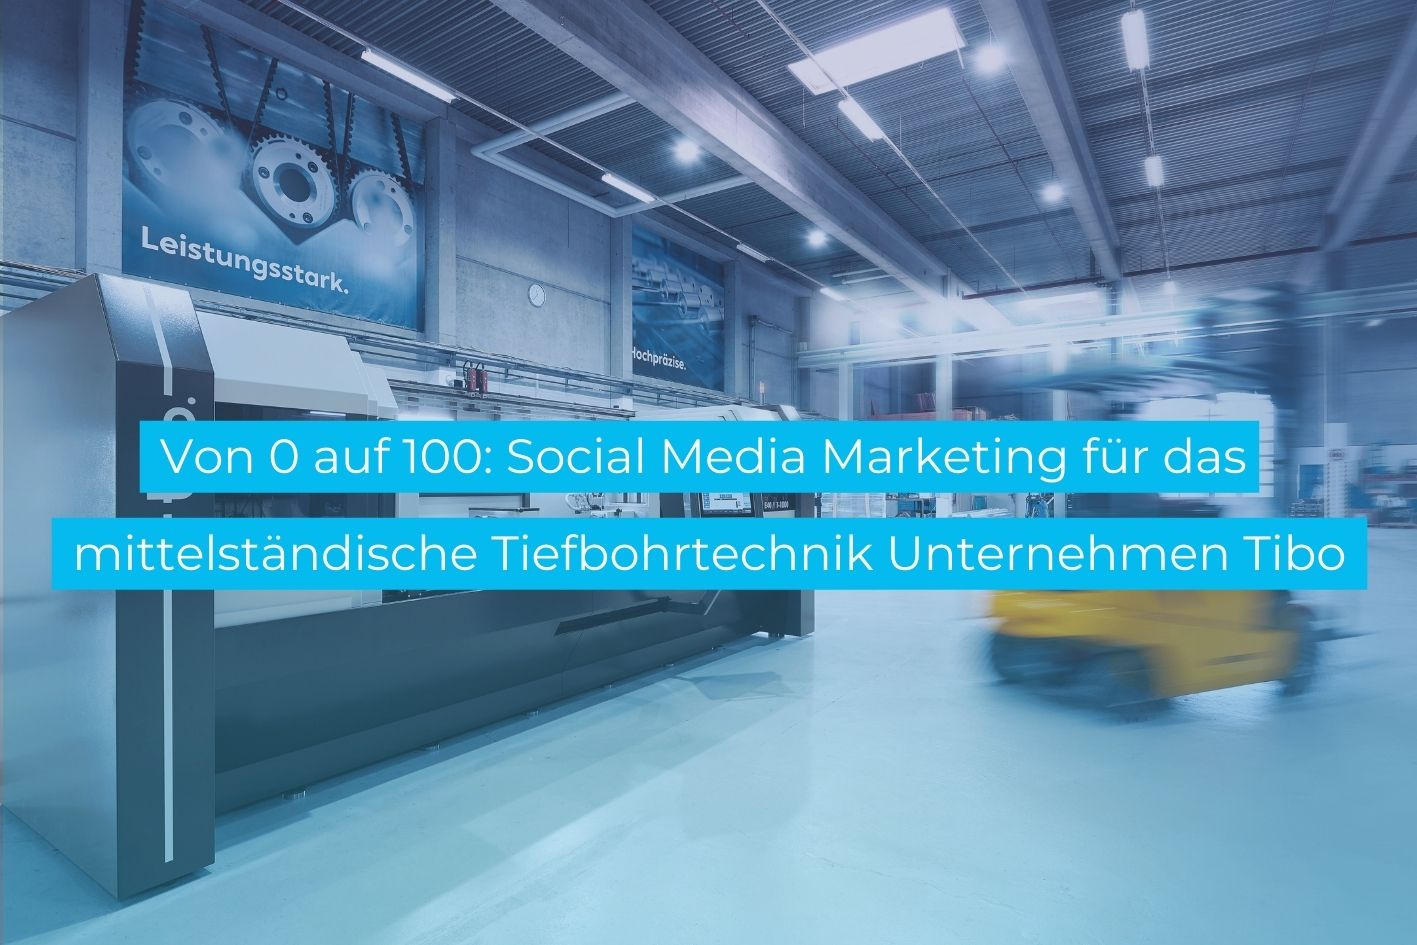 Social Media Marketing Tibo